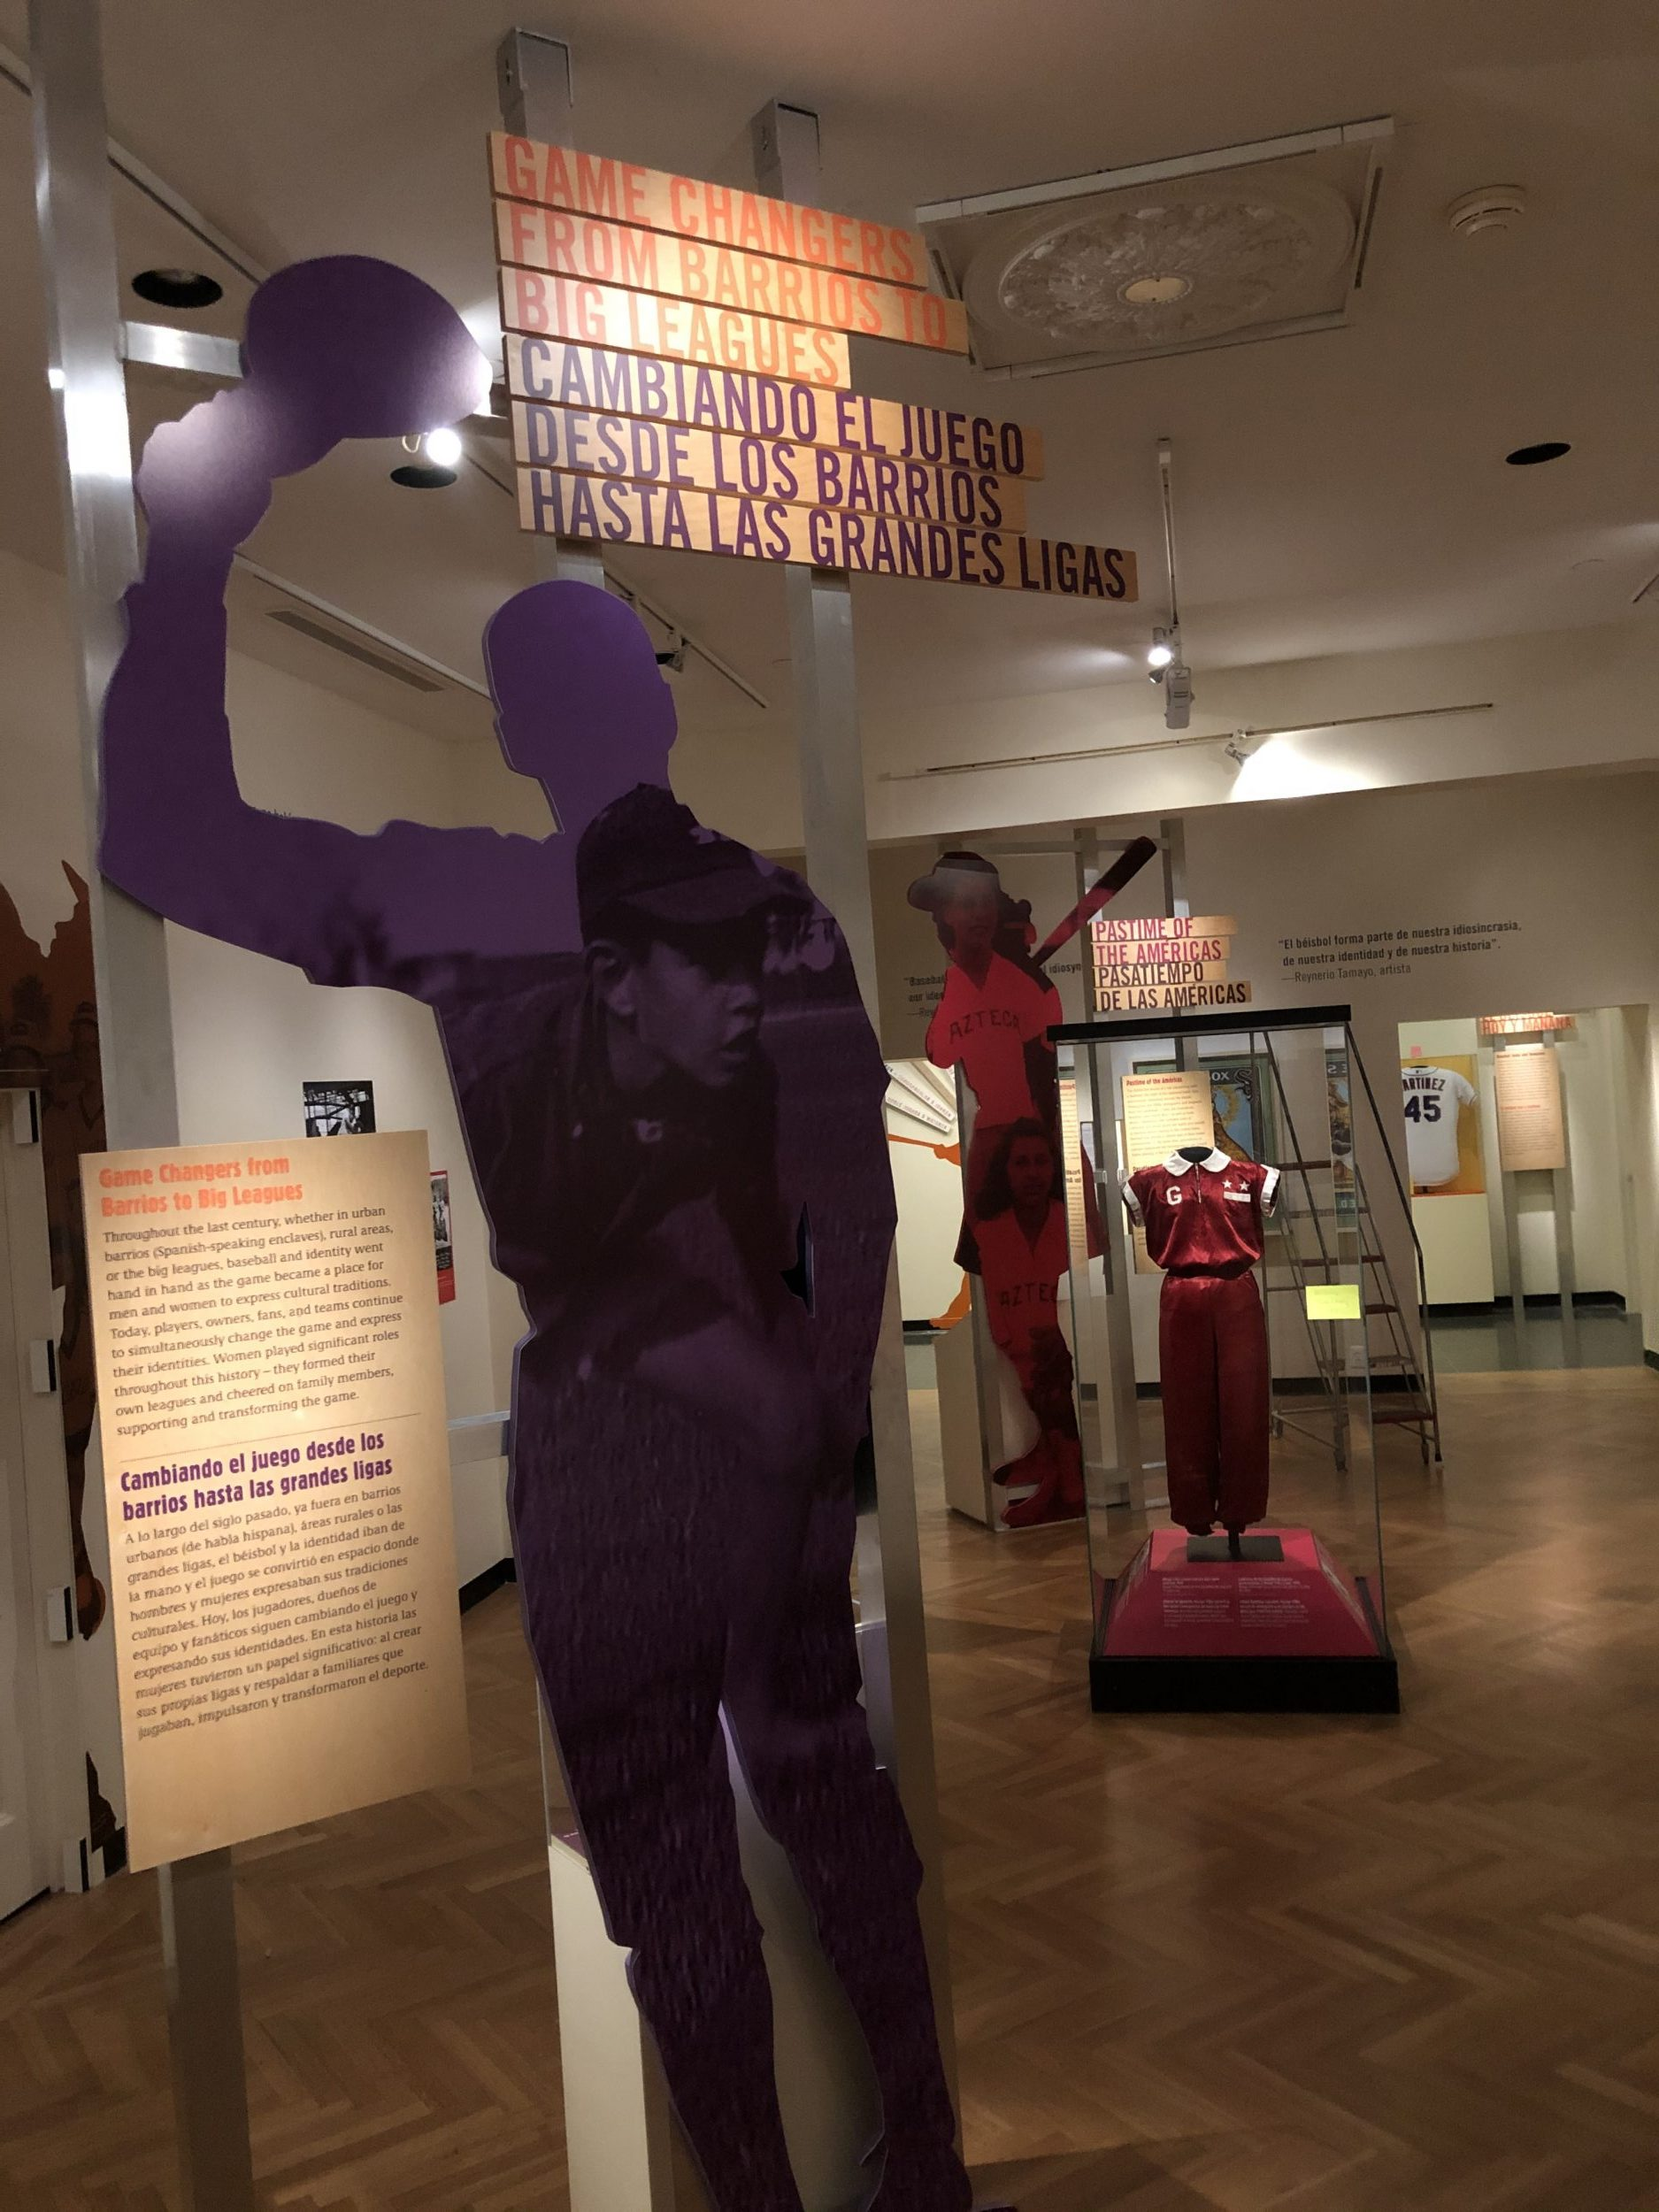 Mounted signage, wall murals, and dimensional cutouts are all part of museum graphics.